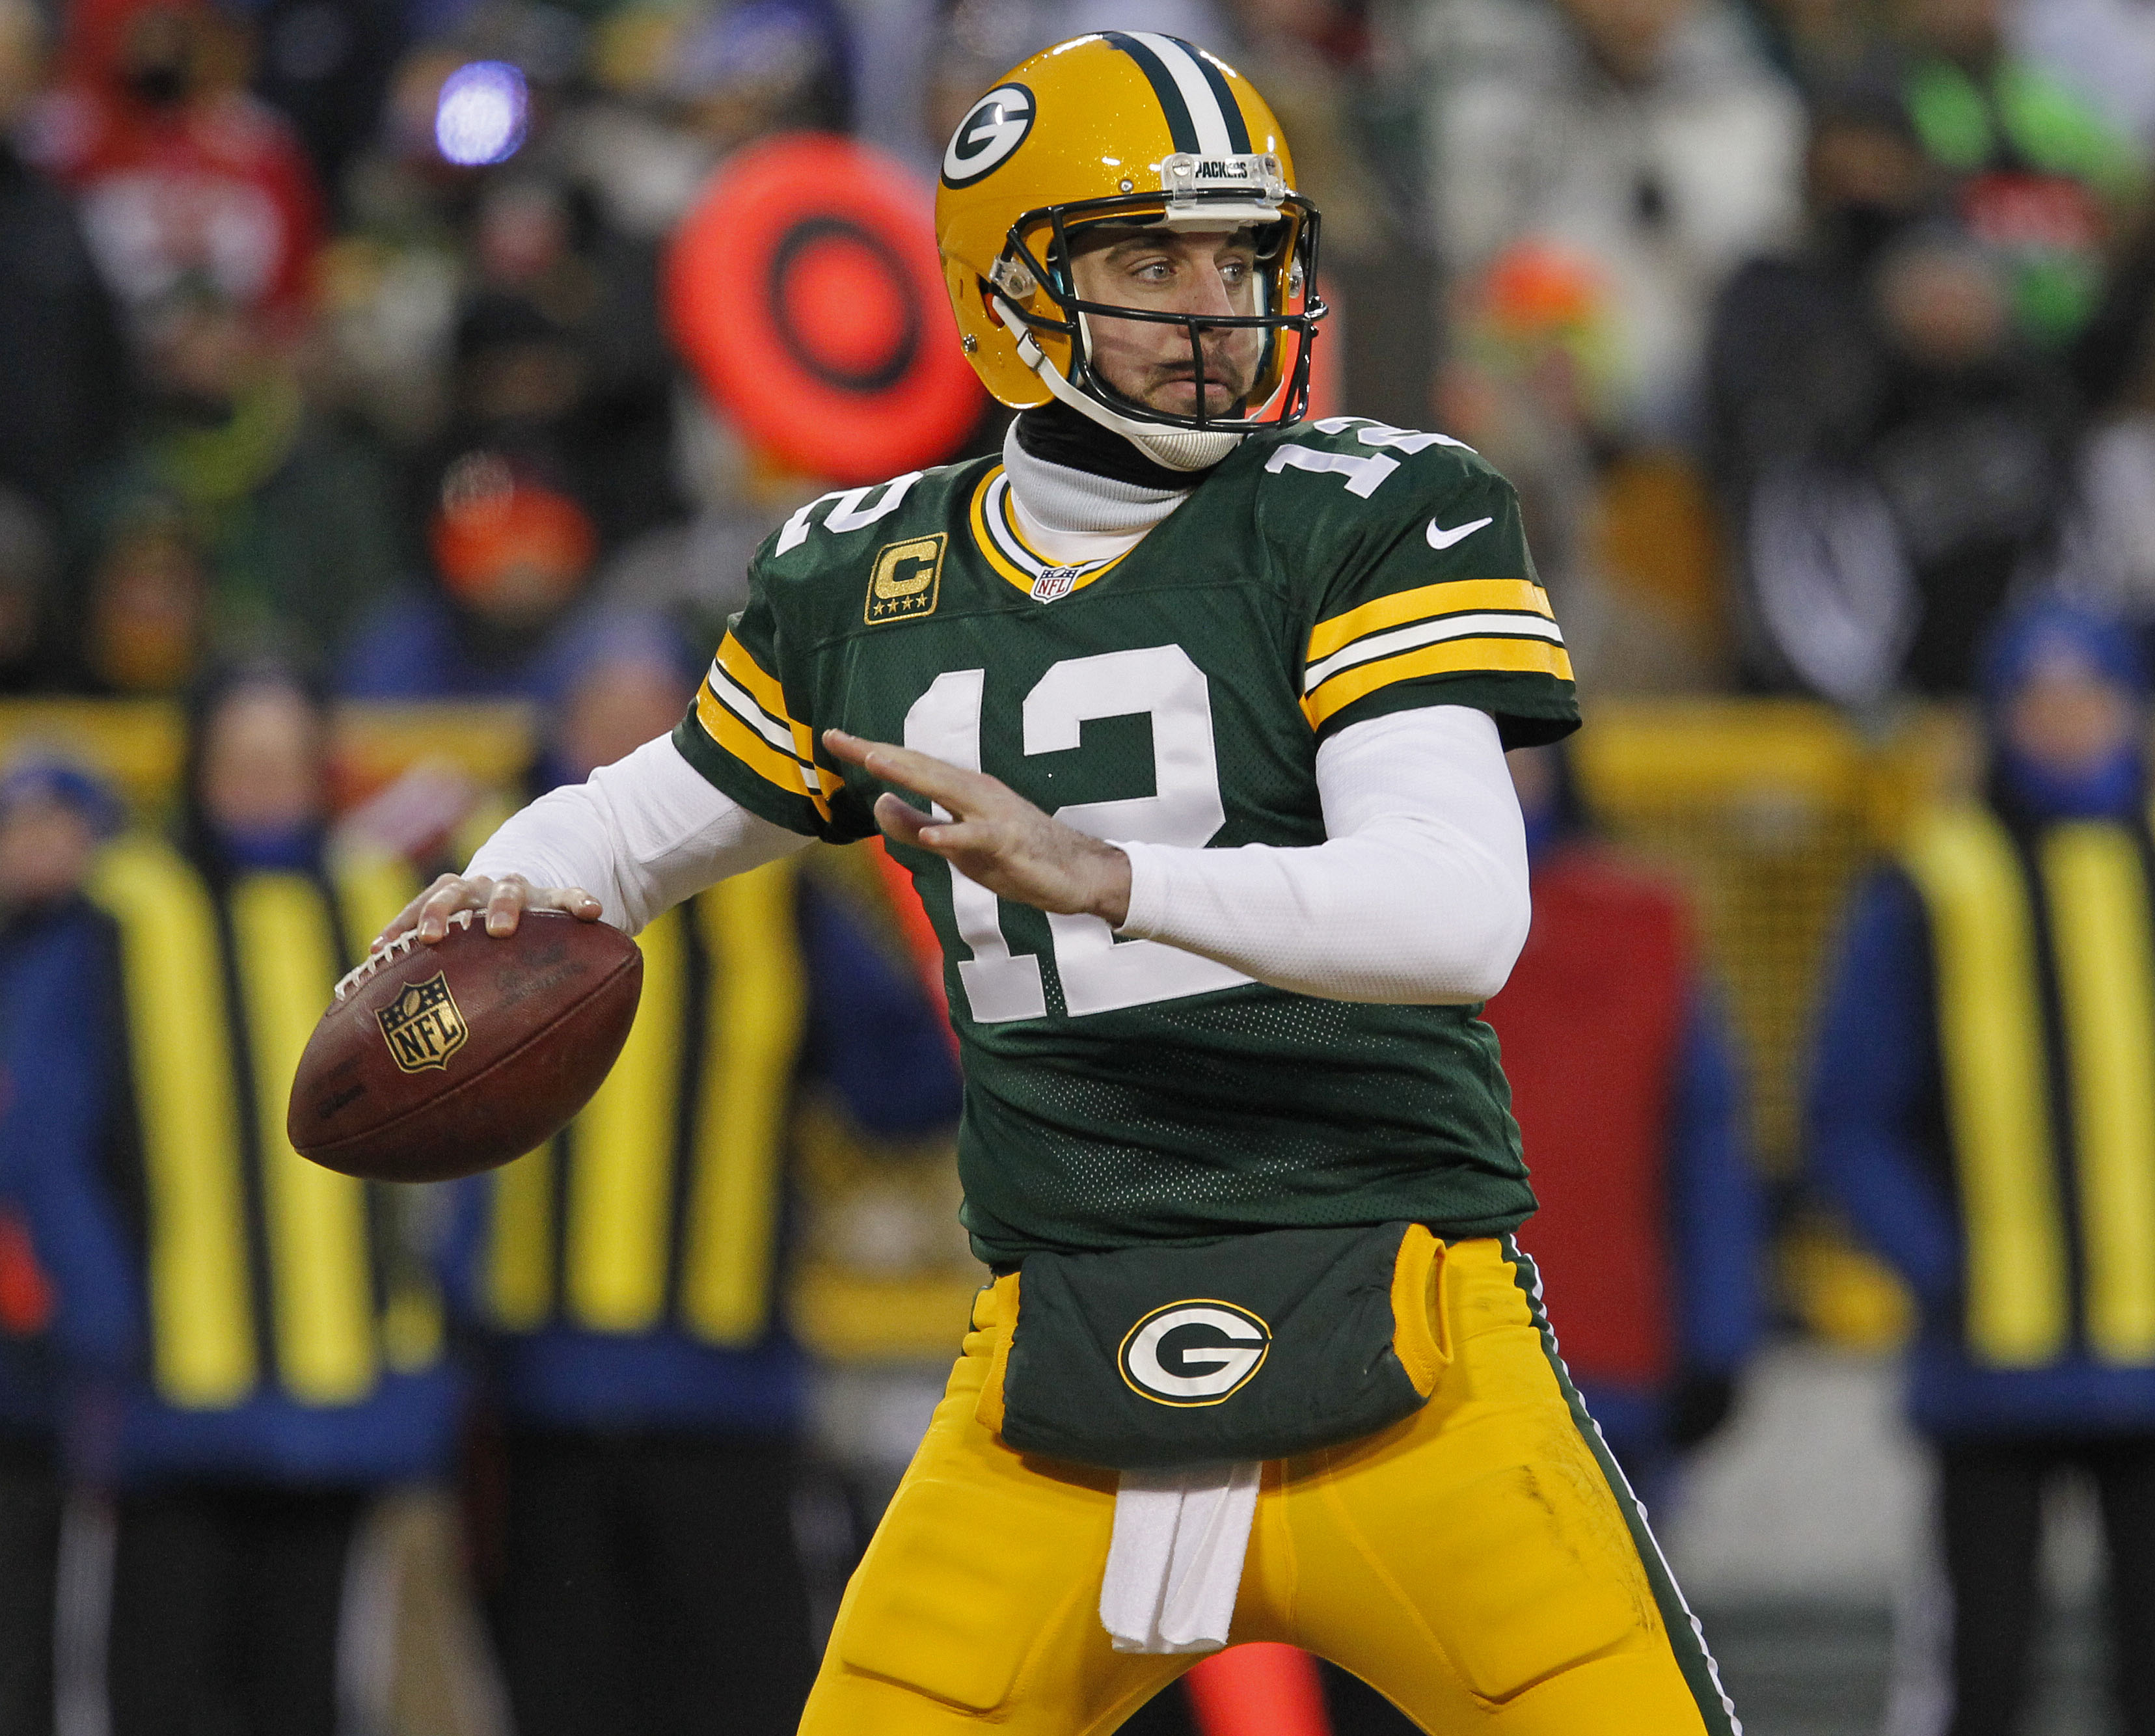 Green Bay Packers QB Aaron Rodgers Says He Plans On Playing Till Hes 40